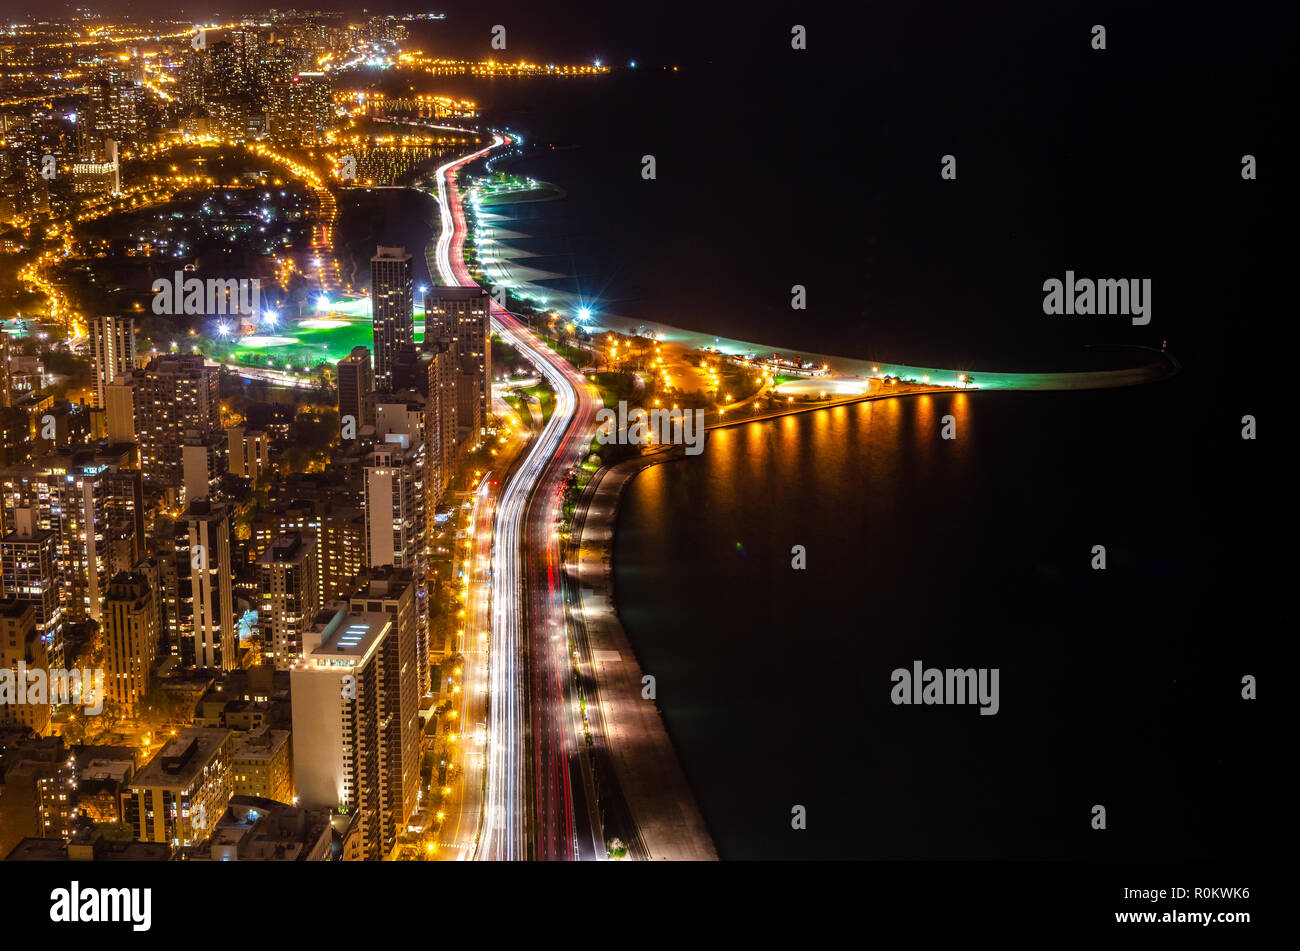 Chicago city areal view during night showing city light in long exposure - Stock Image